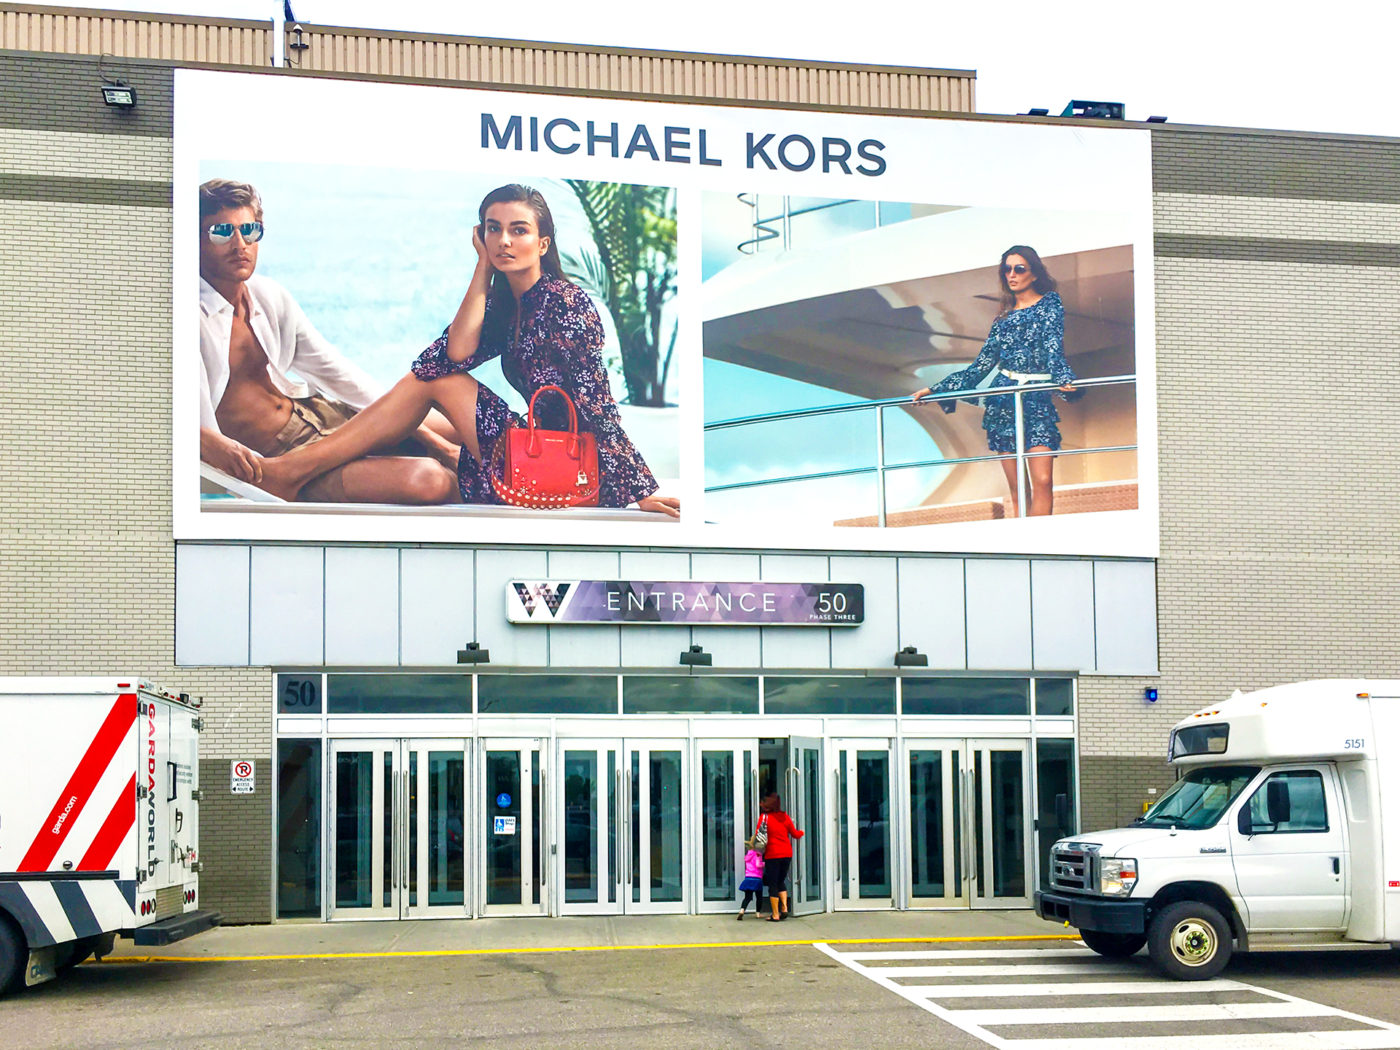 Michael Kors - West Edmonton Mall - Exterior Display (Edmonton, Alberta)